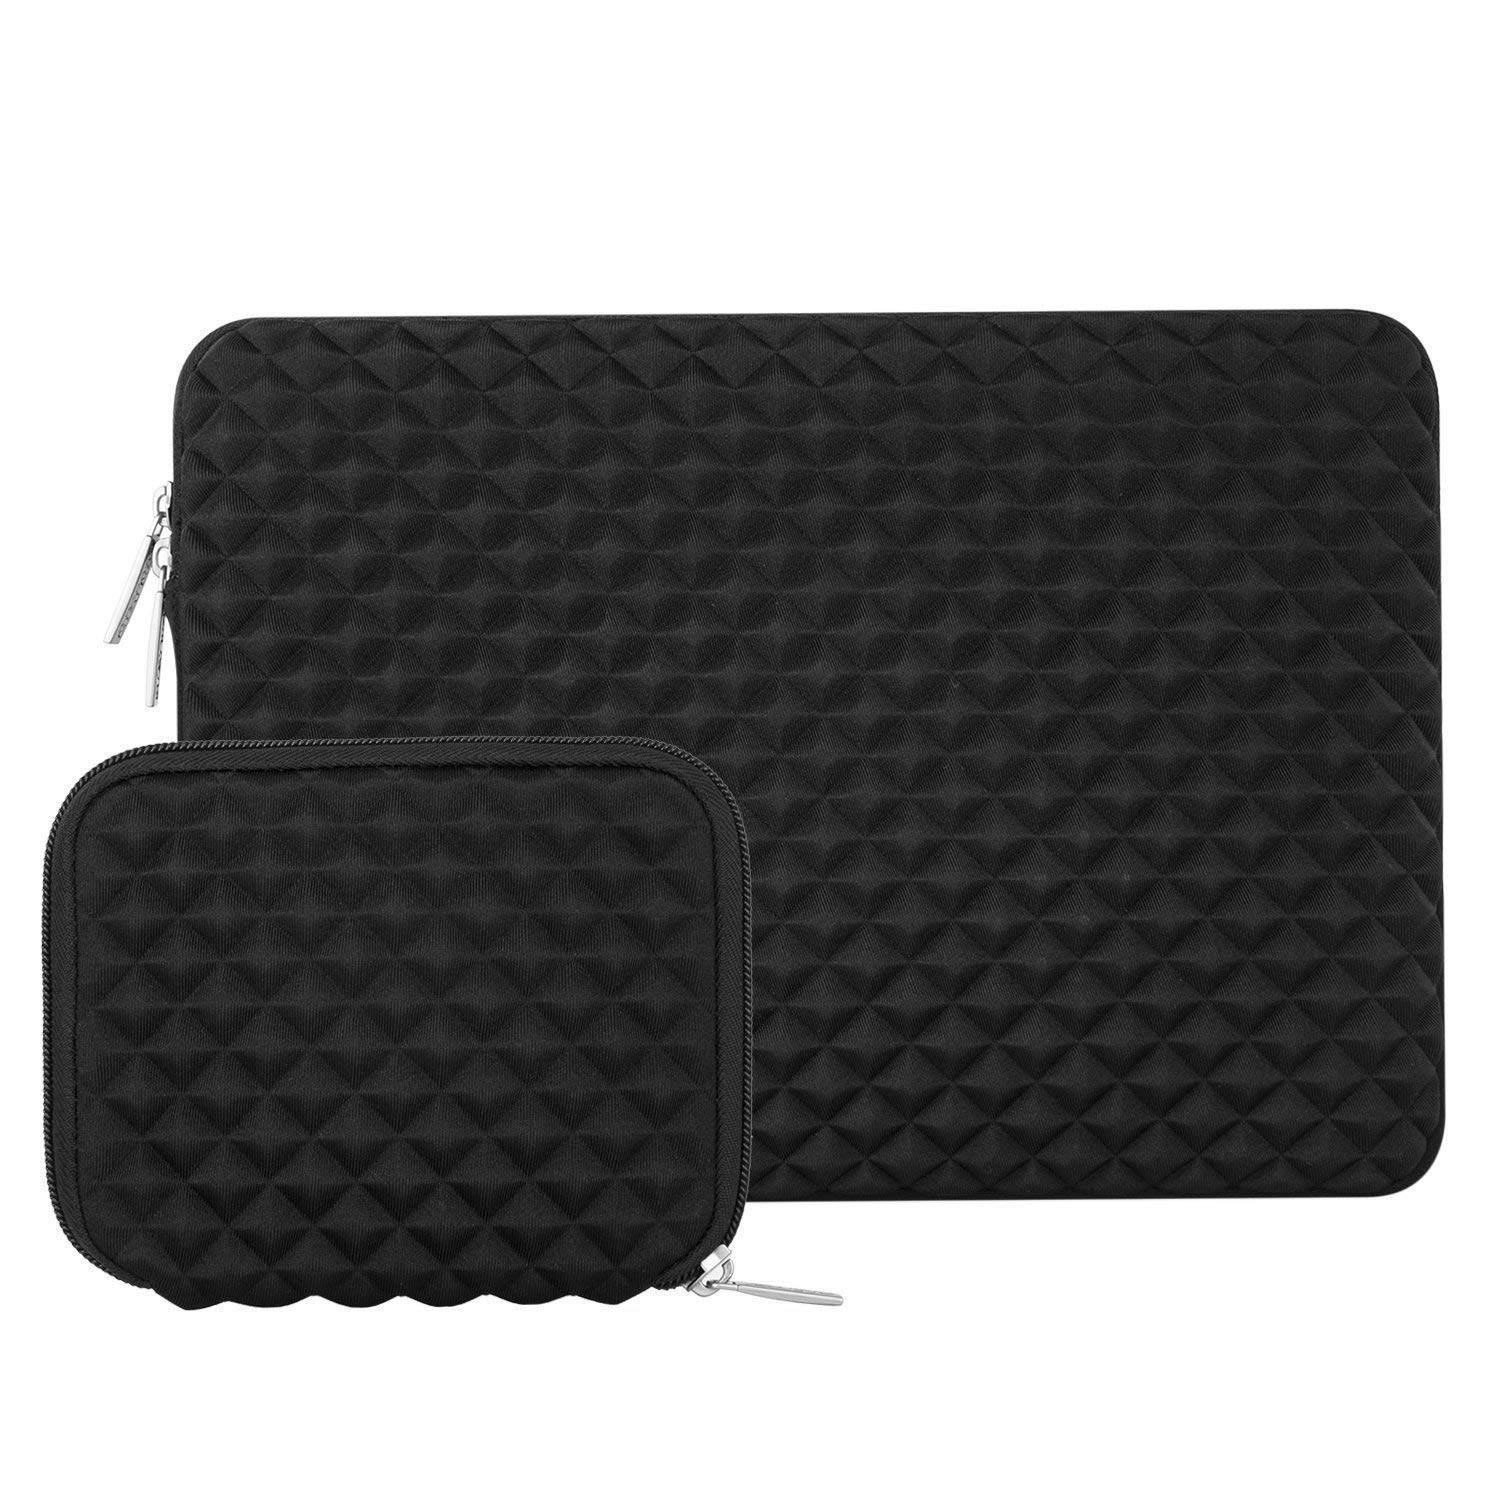 MOSISO Laptop Sleeve Bag Compatible 15-15.6 Inch MacBook Pro, Ultrabook Netbook Tablet with Small Case, Shock Resistant Diamond Foam Water Repellent Neoprene Protective Carrying Cover, Black